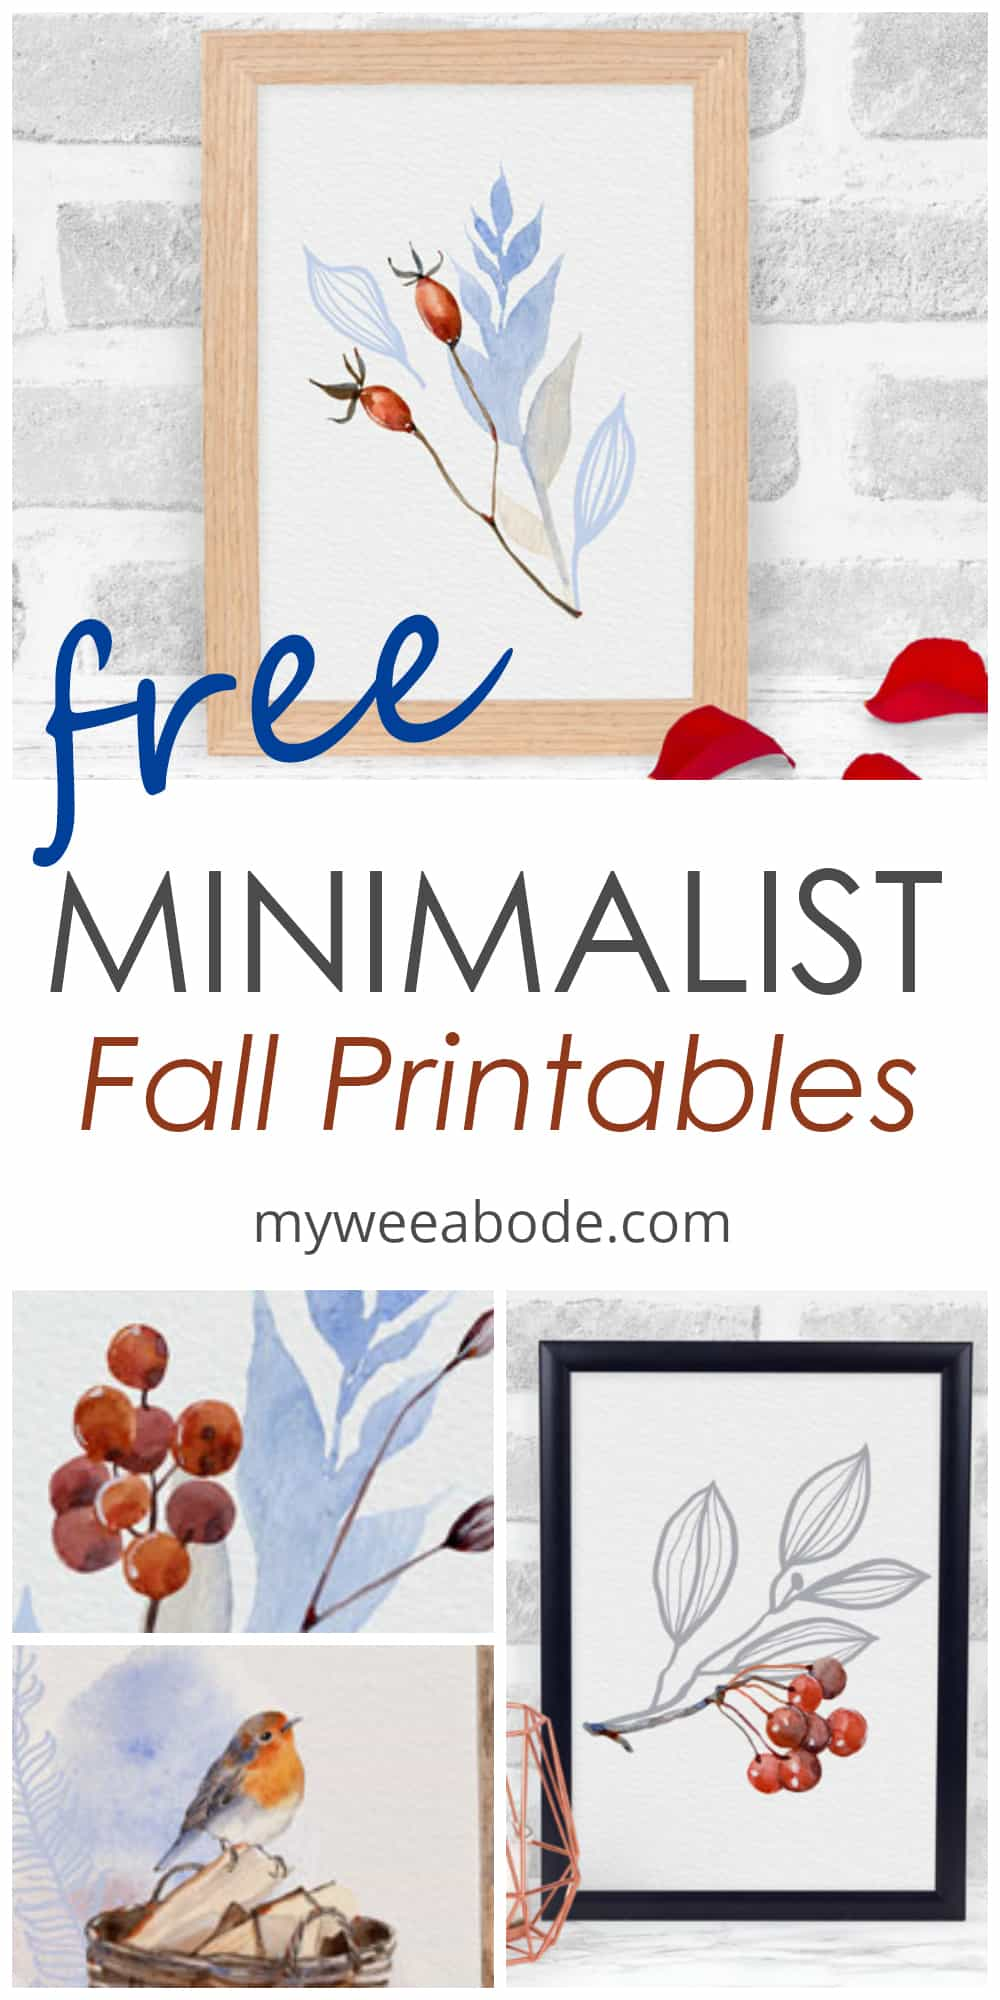 minimalist fall watercolor printables with red pods and leaves in frame and rose petals on white surface